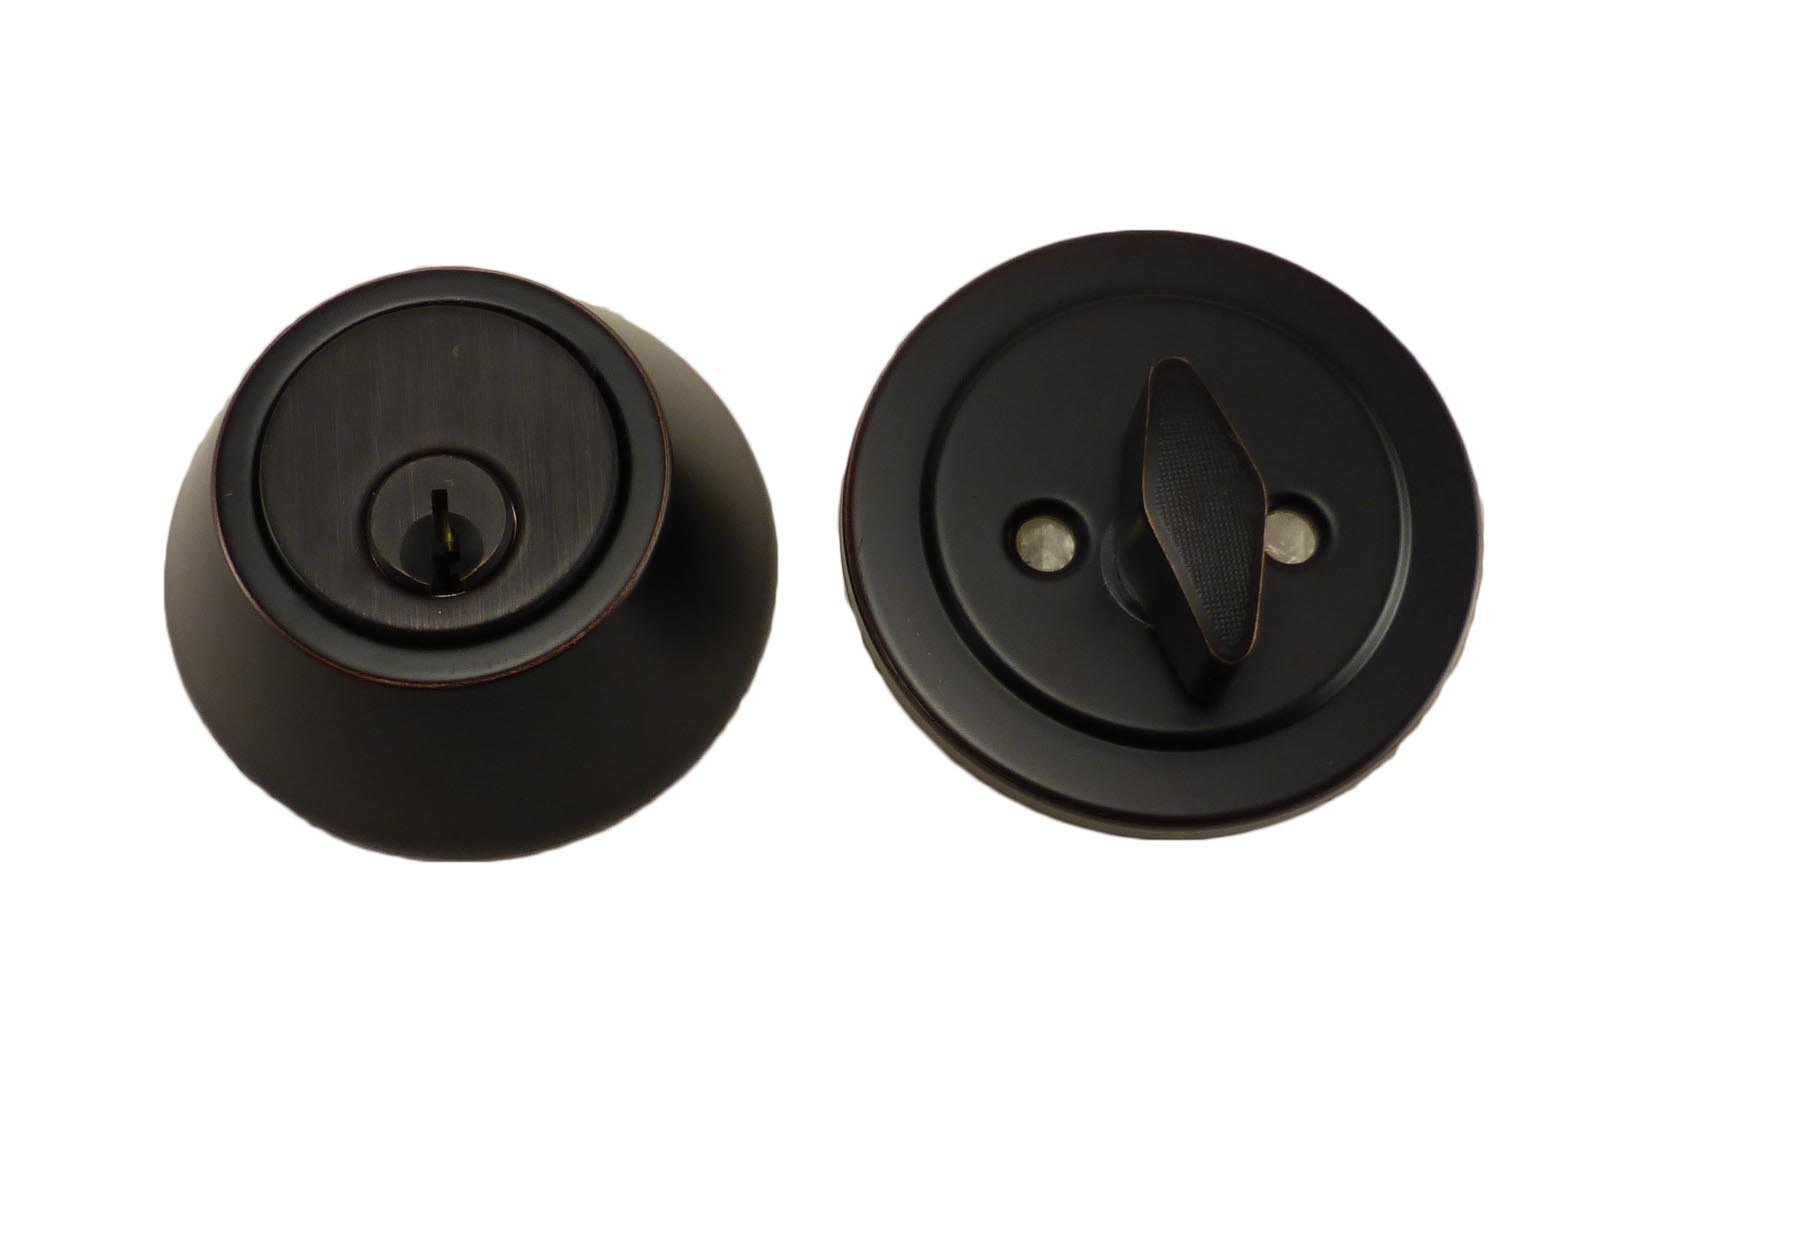 East West Consolidated Oil Rubbed Bronze Single Cylinder Deadbolt 920-US10B-1xc